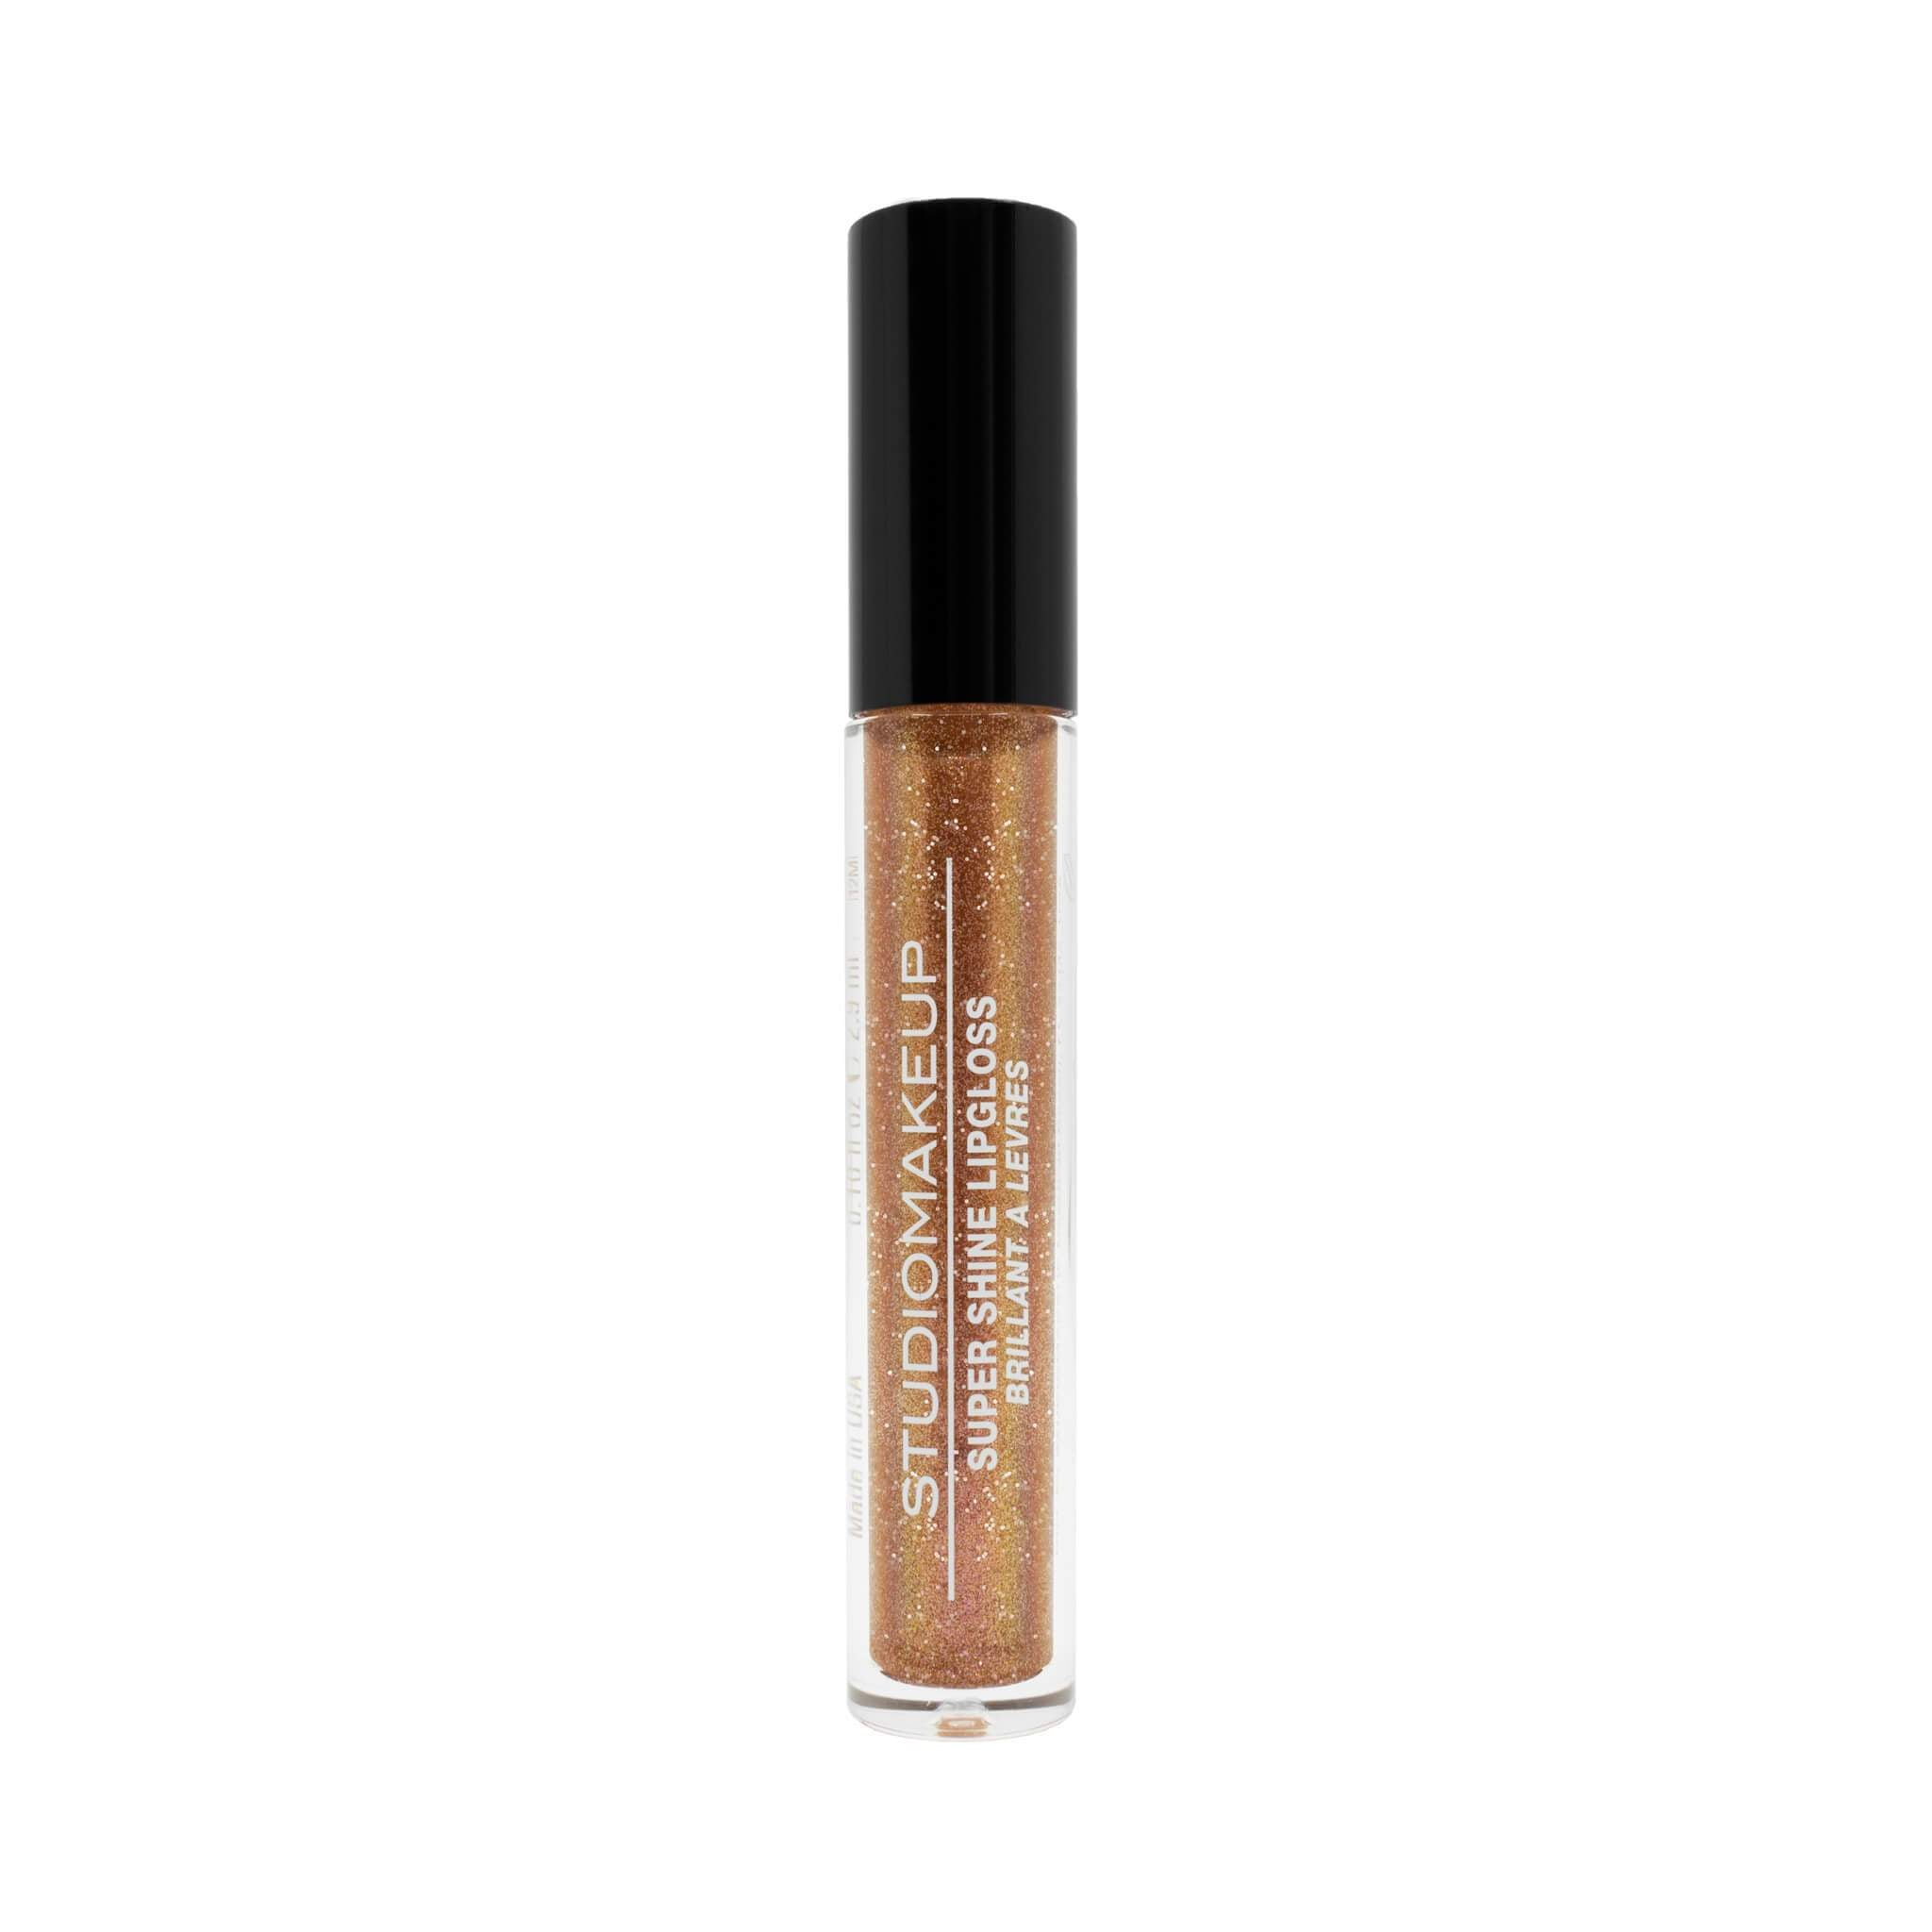 SUPERSHINE GLITTER GLOSS CYBER 1